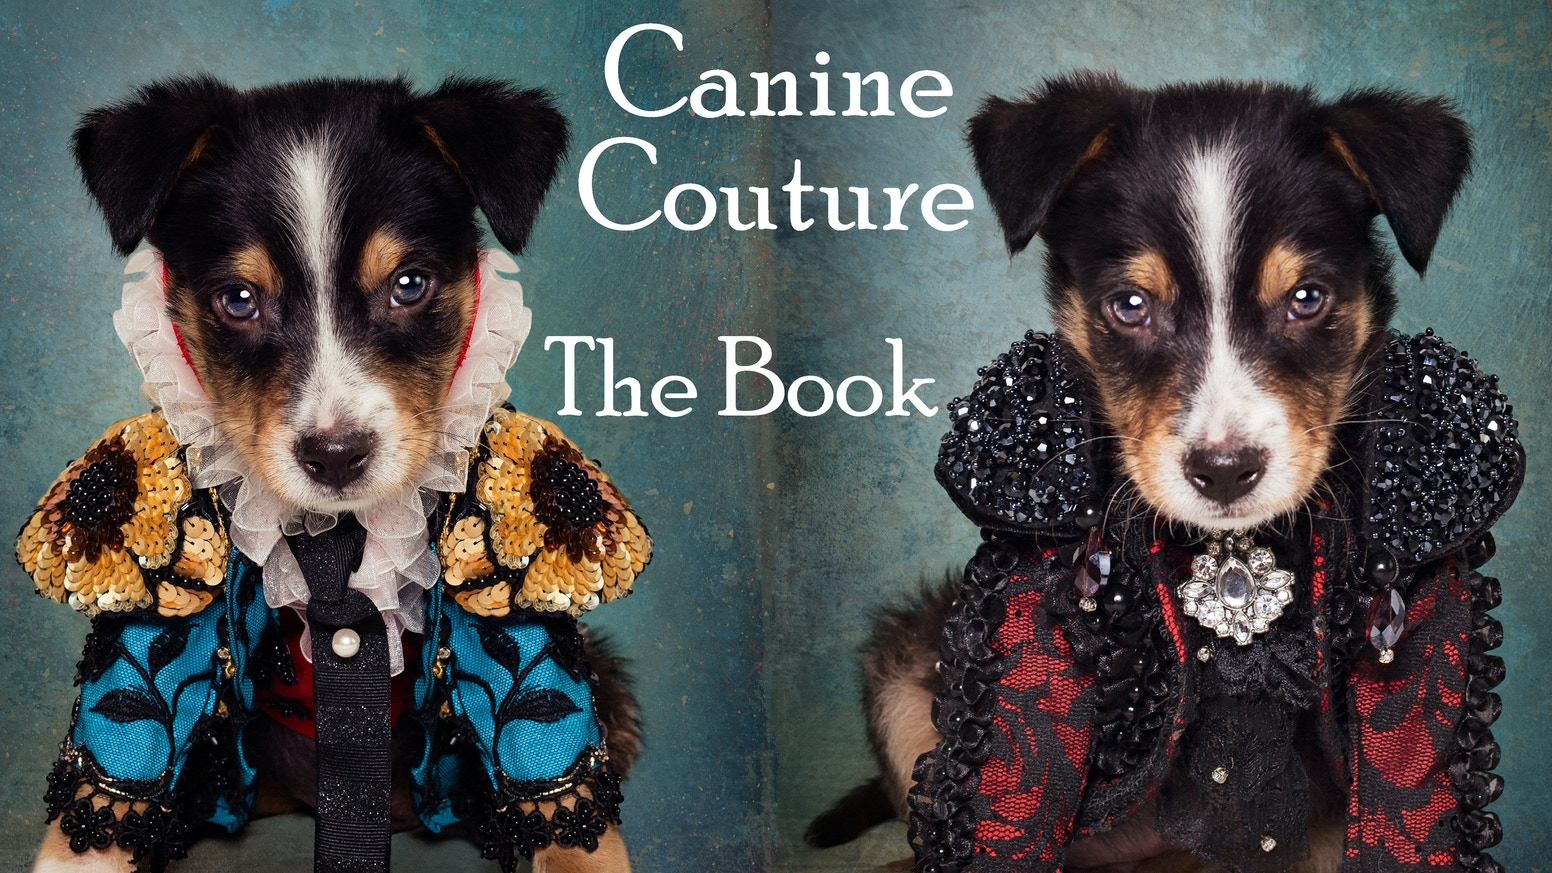 Pre-Order Pet Couturier Anthony Rubio's hard cover coffee table book 'Canine Couture' featuring shelter pets in editorial outfits.